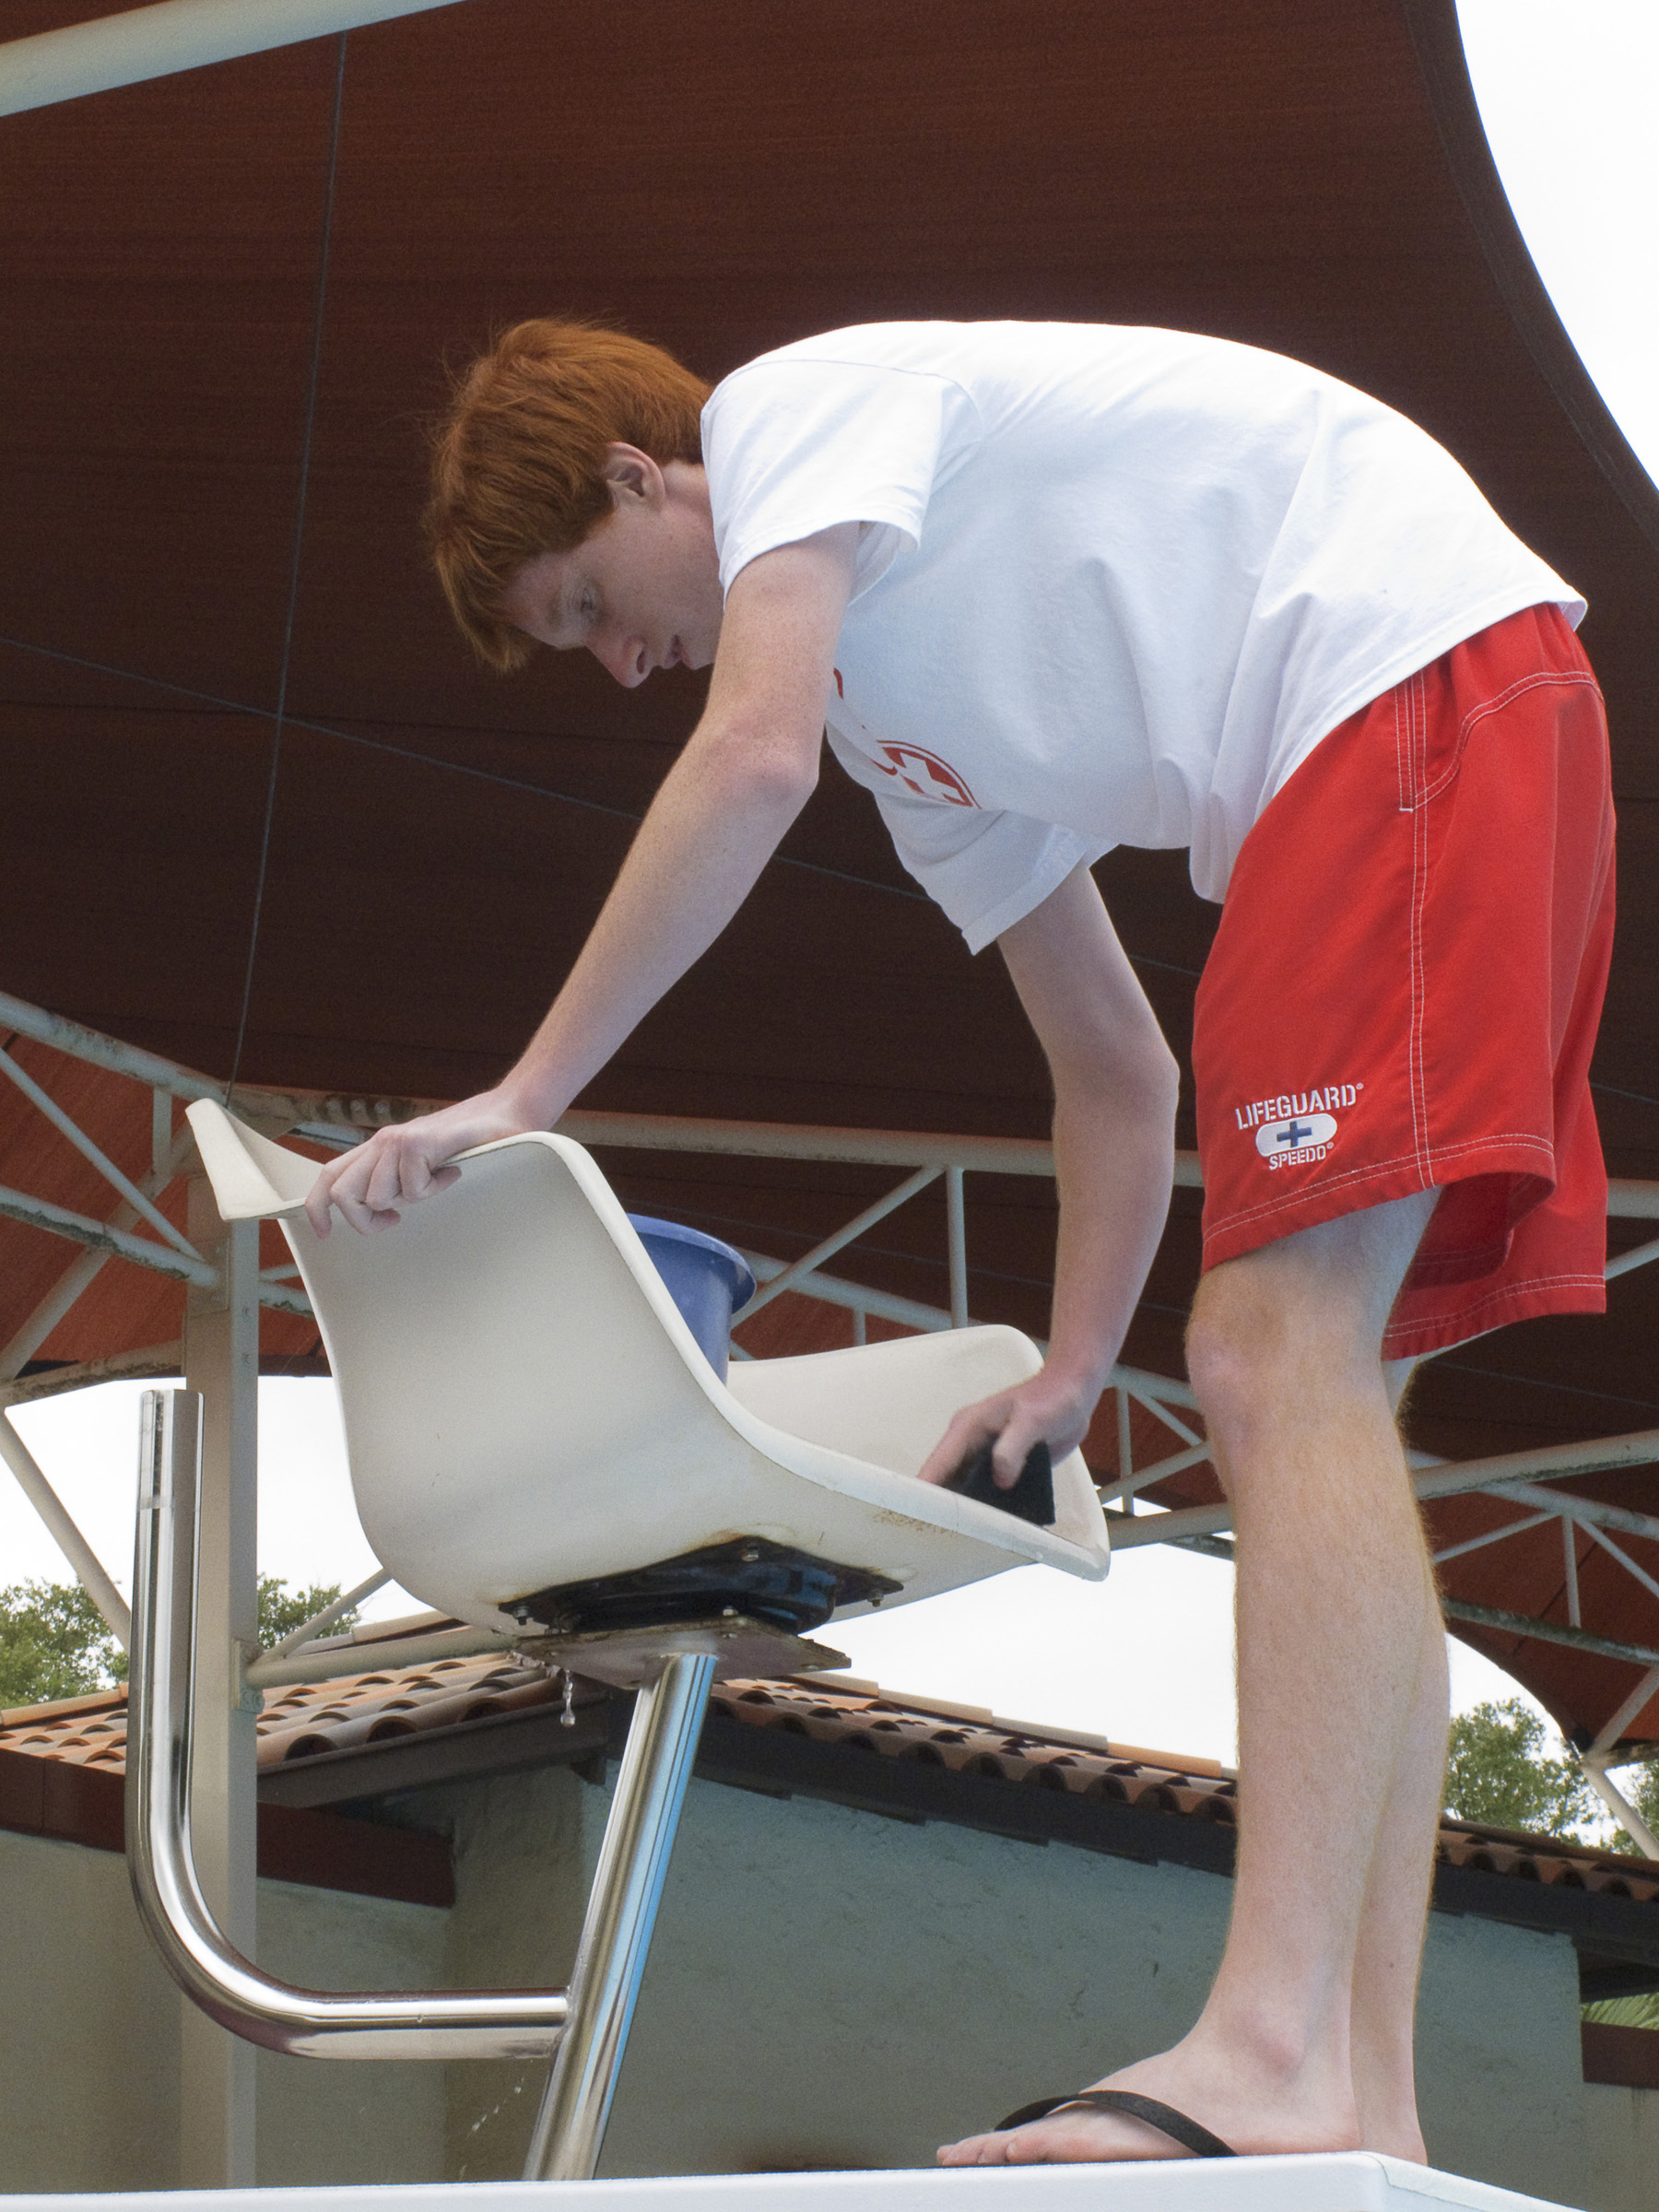 file brian delaney a lifeguard cleans a lifeguard observation chair at a swimming pool during